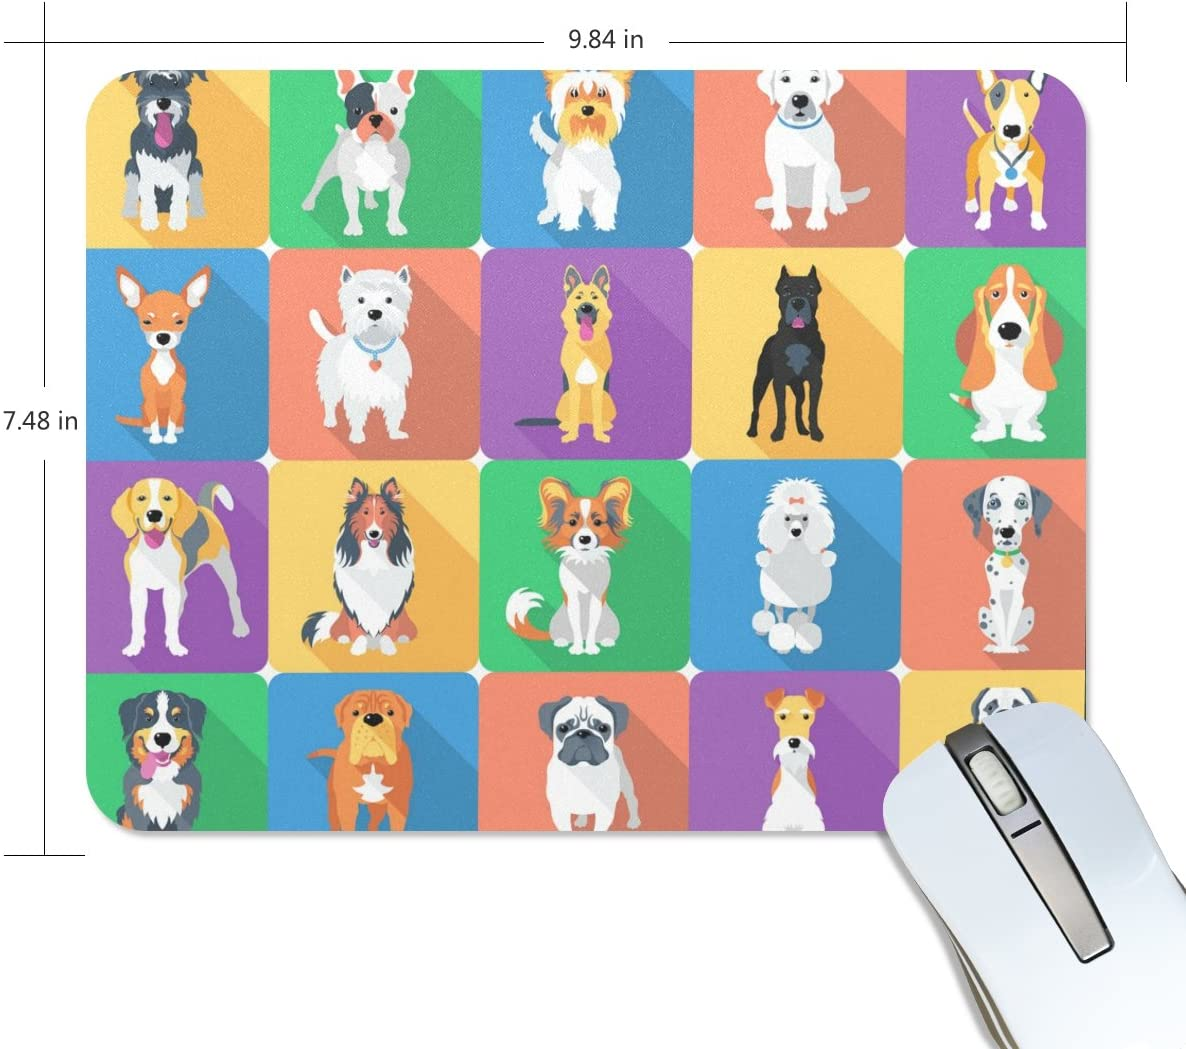 ALAZA Colorful Funny Dog Set Non-Slip Rubber Decorate Gaming Mouse Pad 9.84 x 7.48 inch